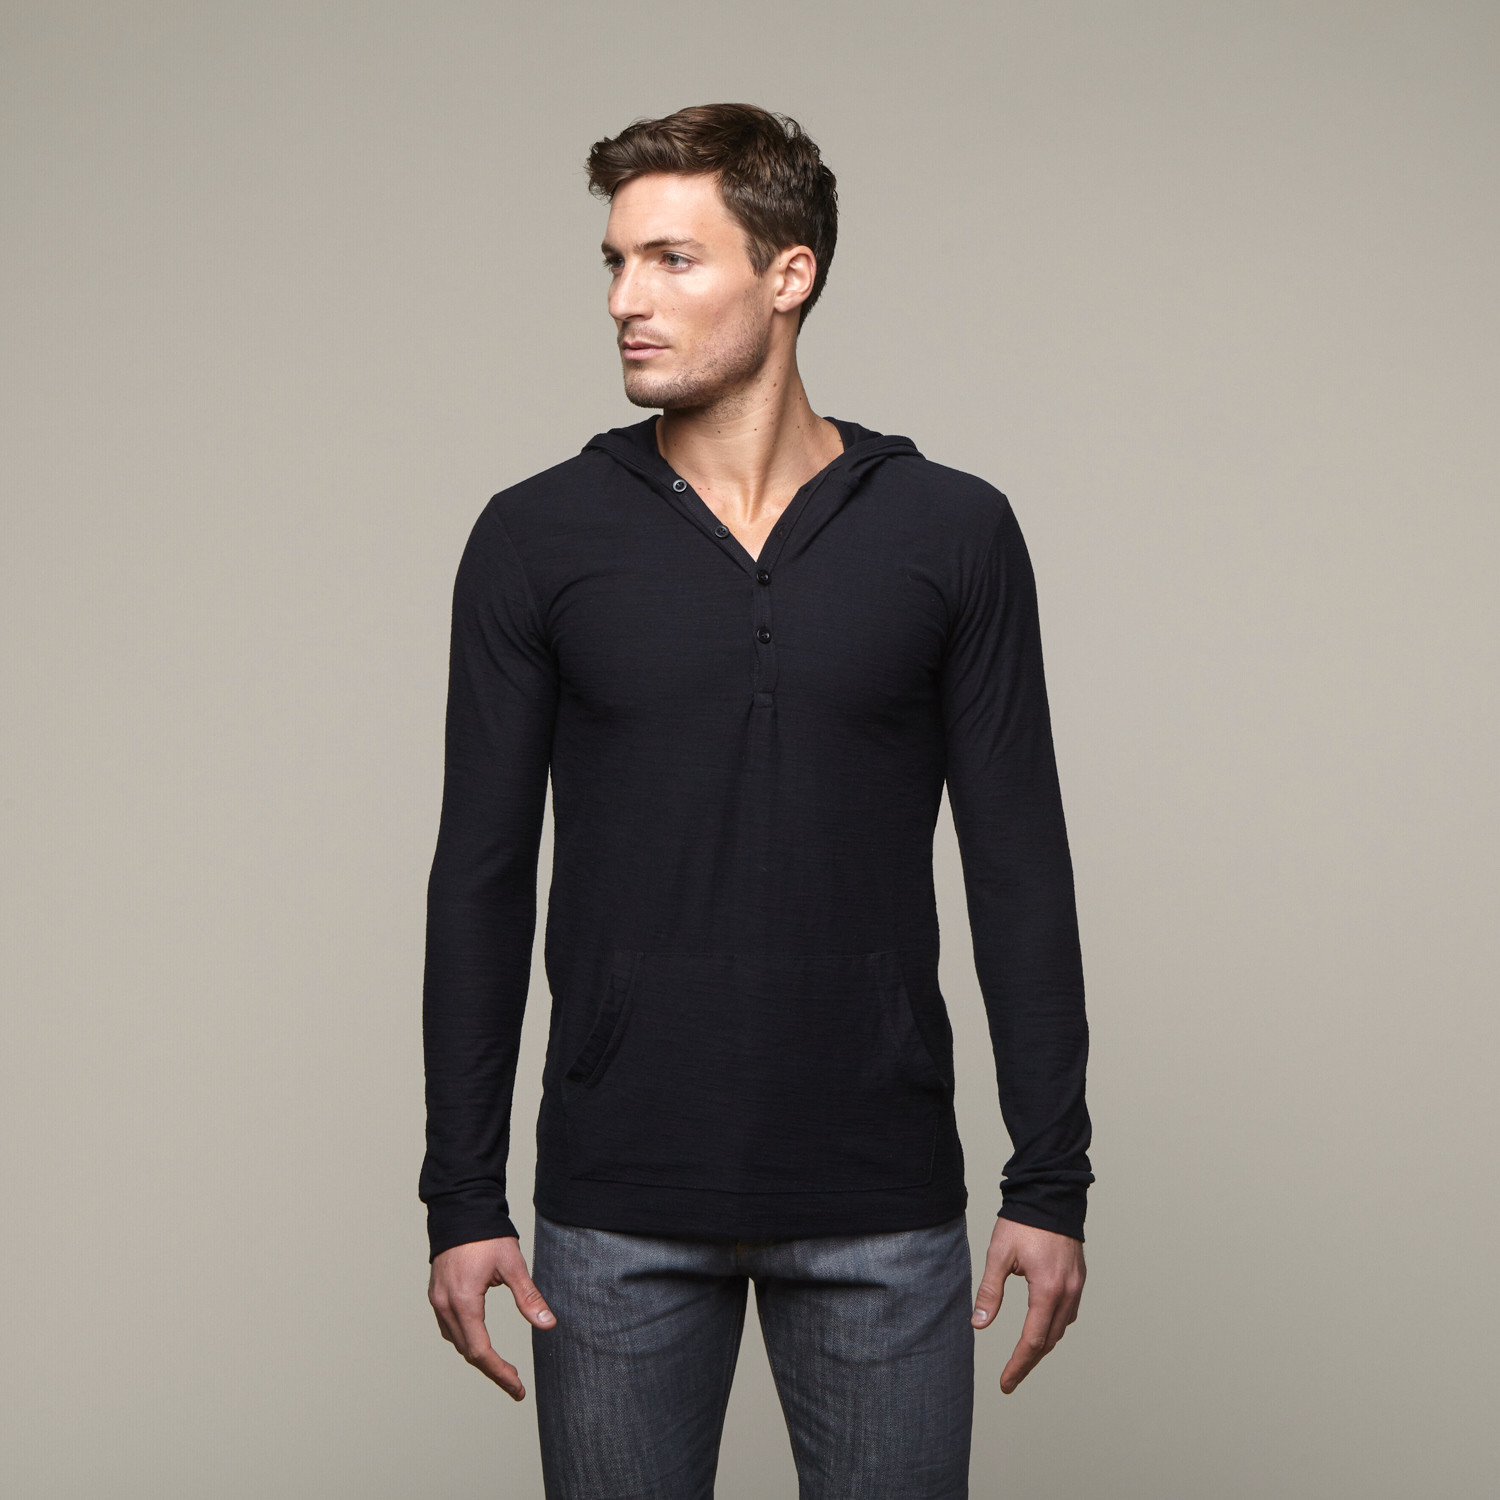 And henleys, with an added touch of delicate buttons, perfectly blend the tomboy and the femme. Soft, stylish and cozy, these long sleeve tops are just the burst of inspiration you need for layering in the fall and winter.